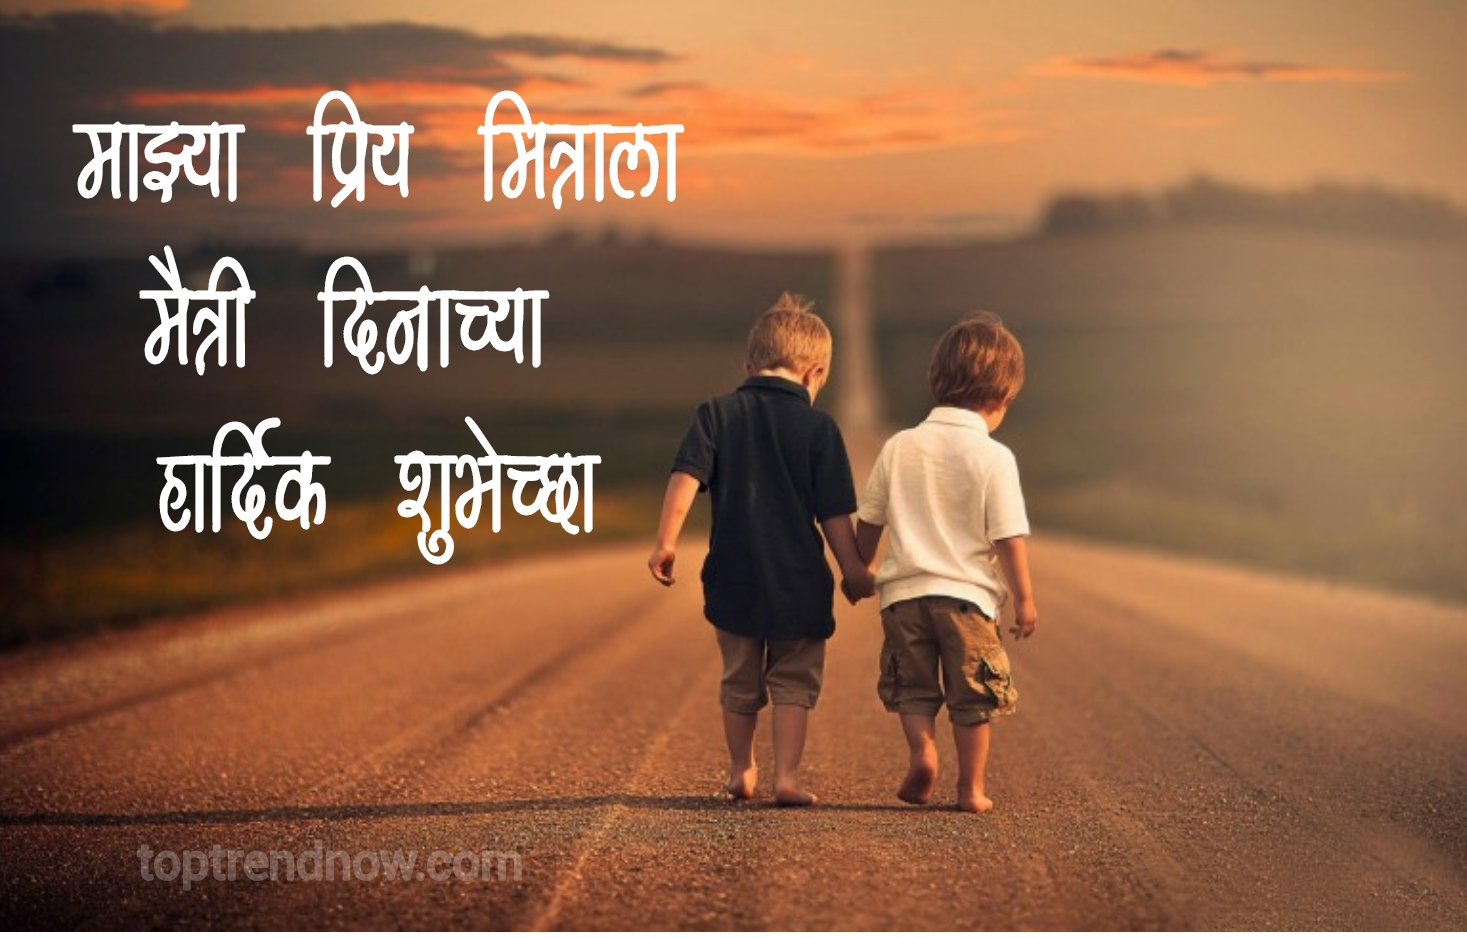 happy friendship day wishes in marathi 2018